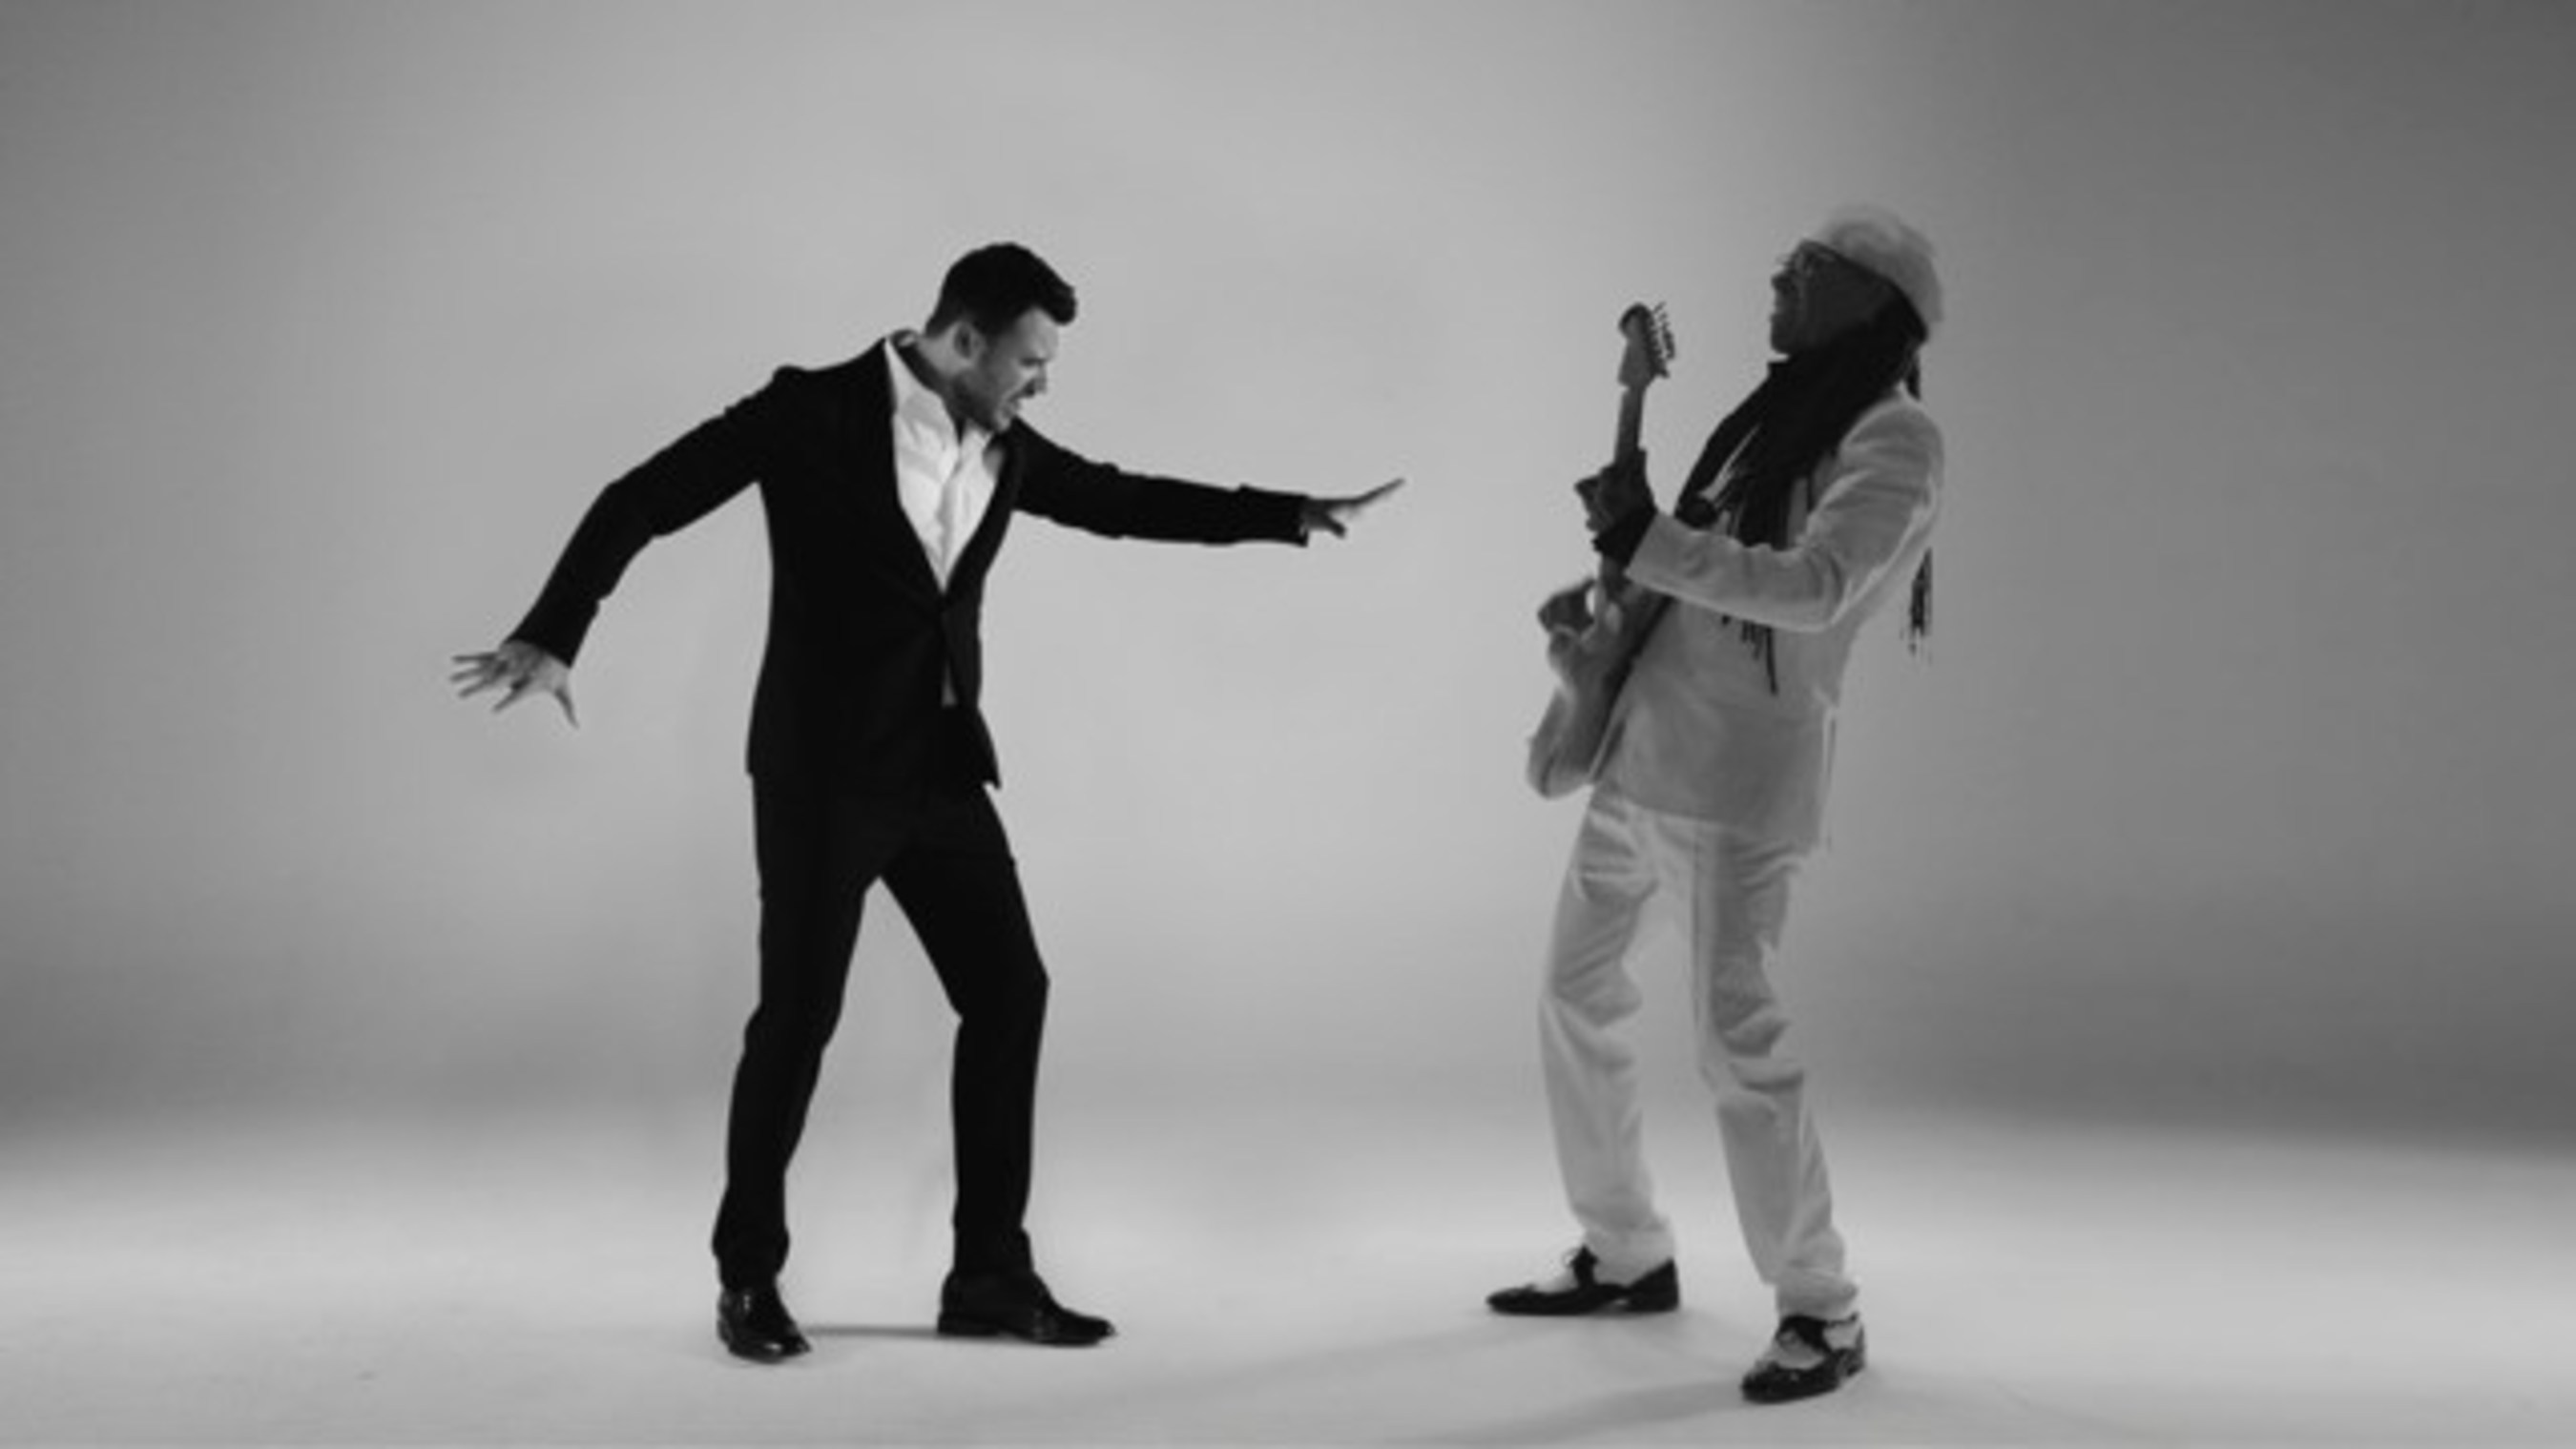 International Pop Star Emin Teams Up With Hit-Maker Nile Rodgers For New Single -- 'Boomerang'